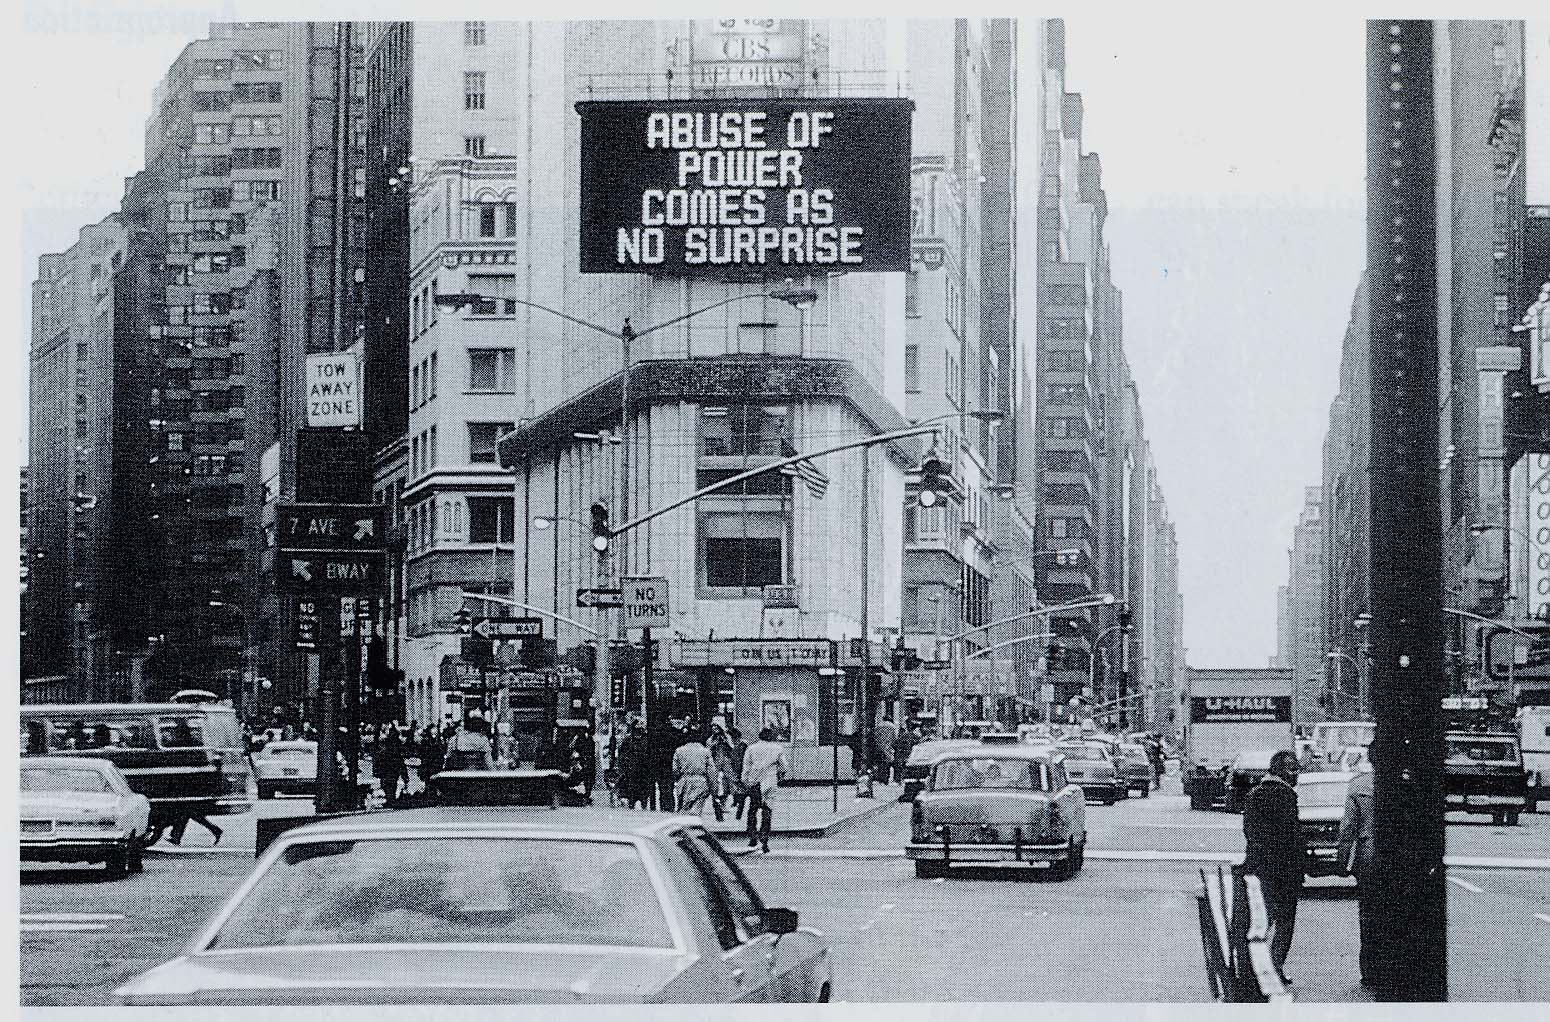 Image: Jenny Holzer, Abuse of Power Comes As No Surprise (1982). Photo credit: John Marchael. Courtesy: Jane Dickson. © Jenny Holzer, Artists Rights Society (ARS), New York.